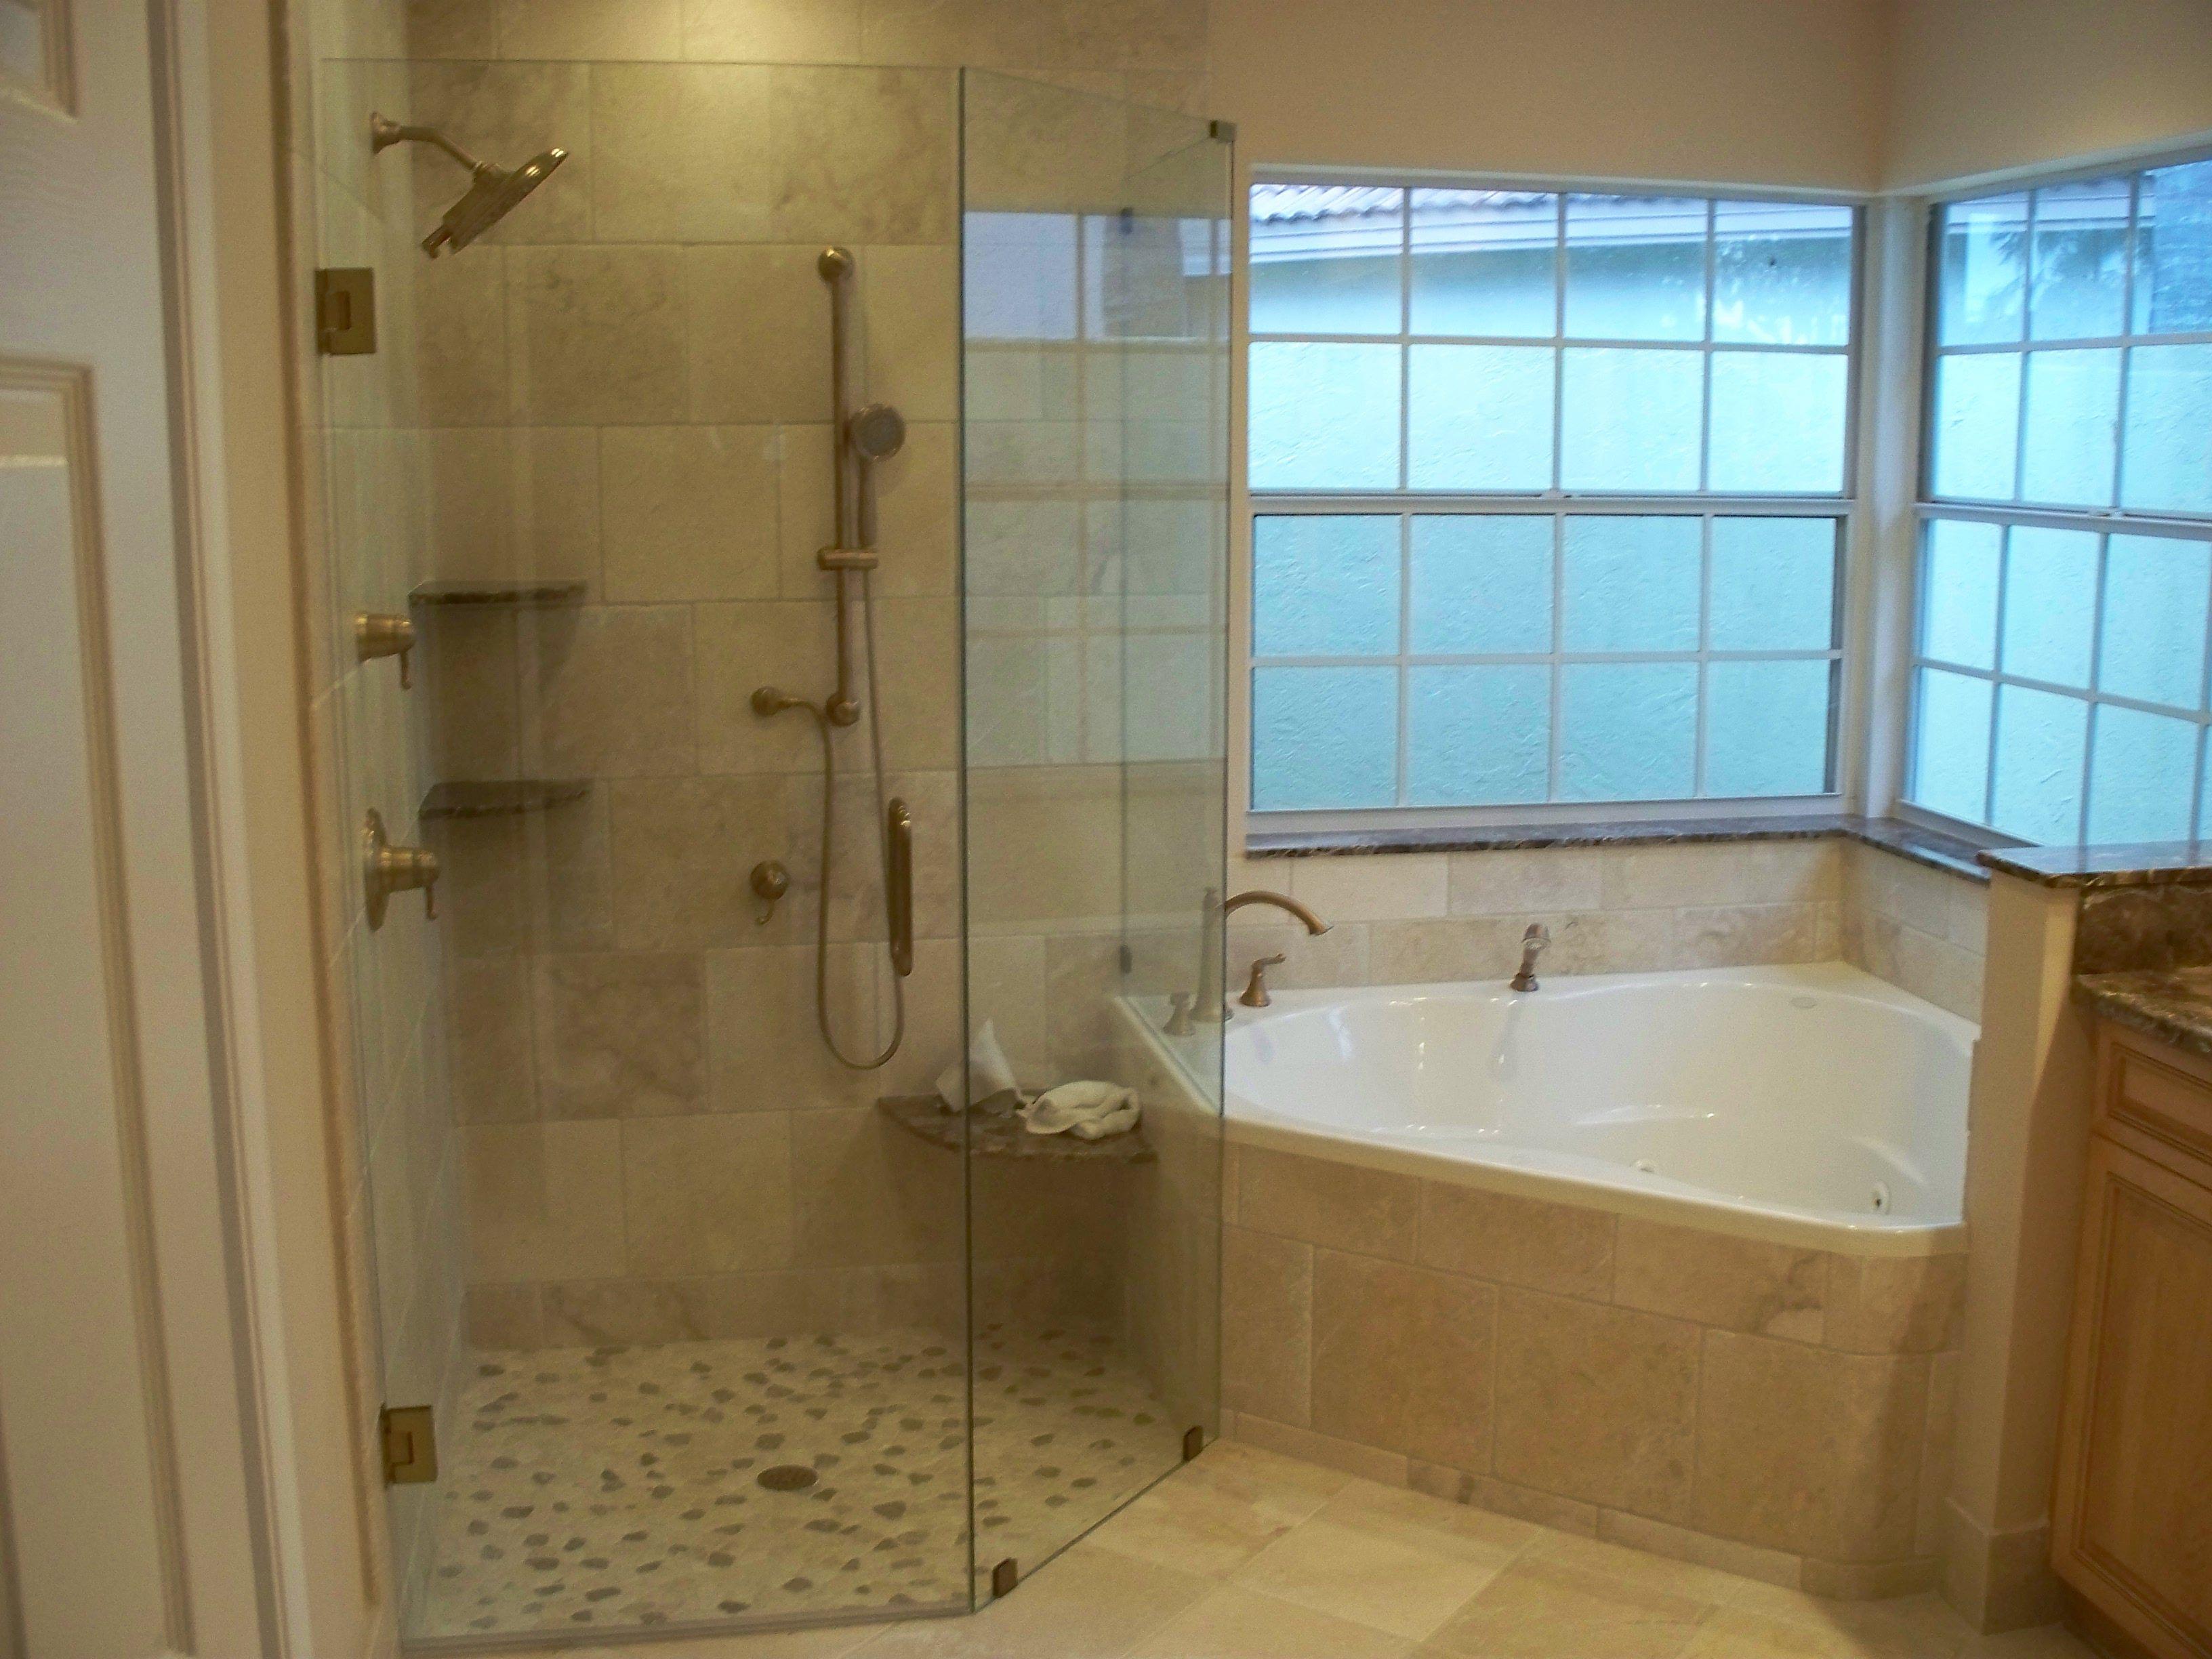 Small Bathroom Jet Tub corner tub w/ larger walk in shower. do not like the wall next to